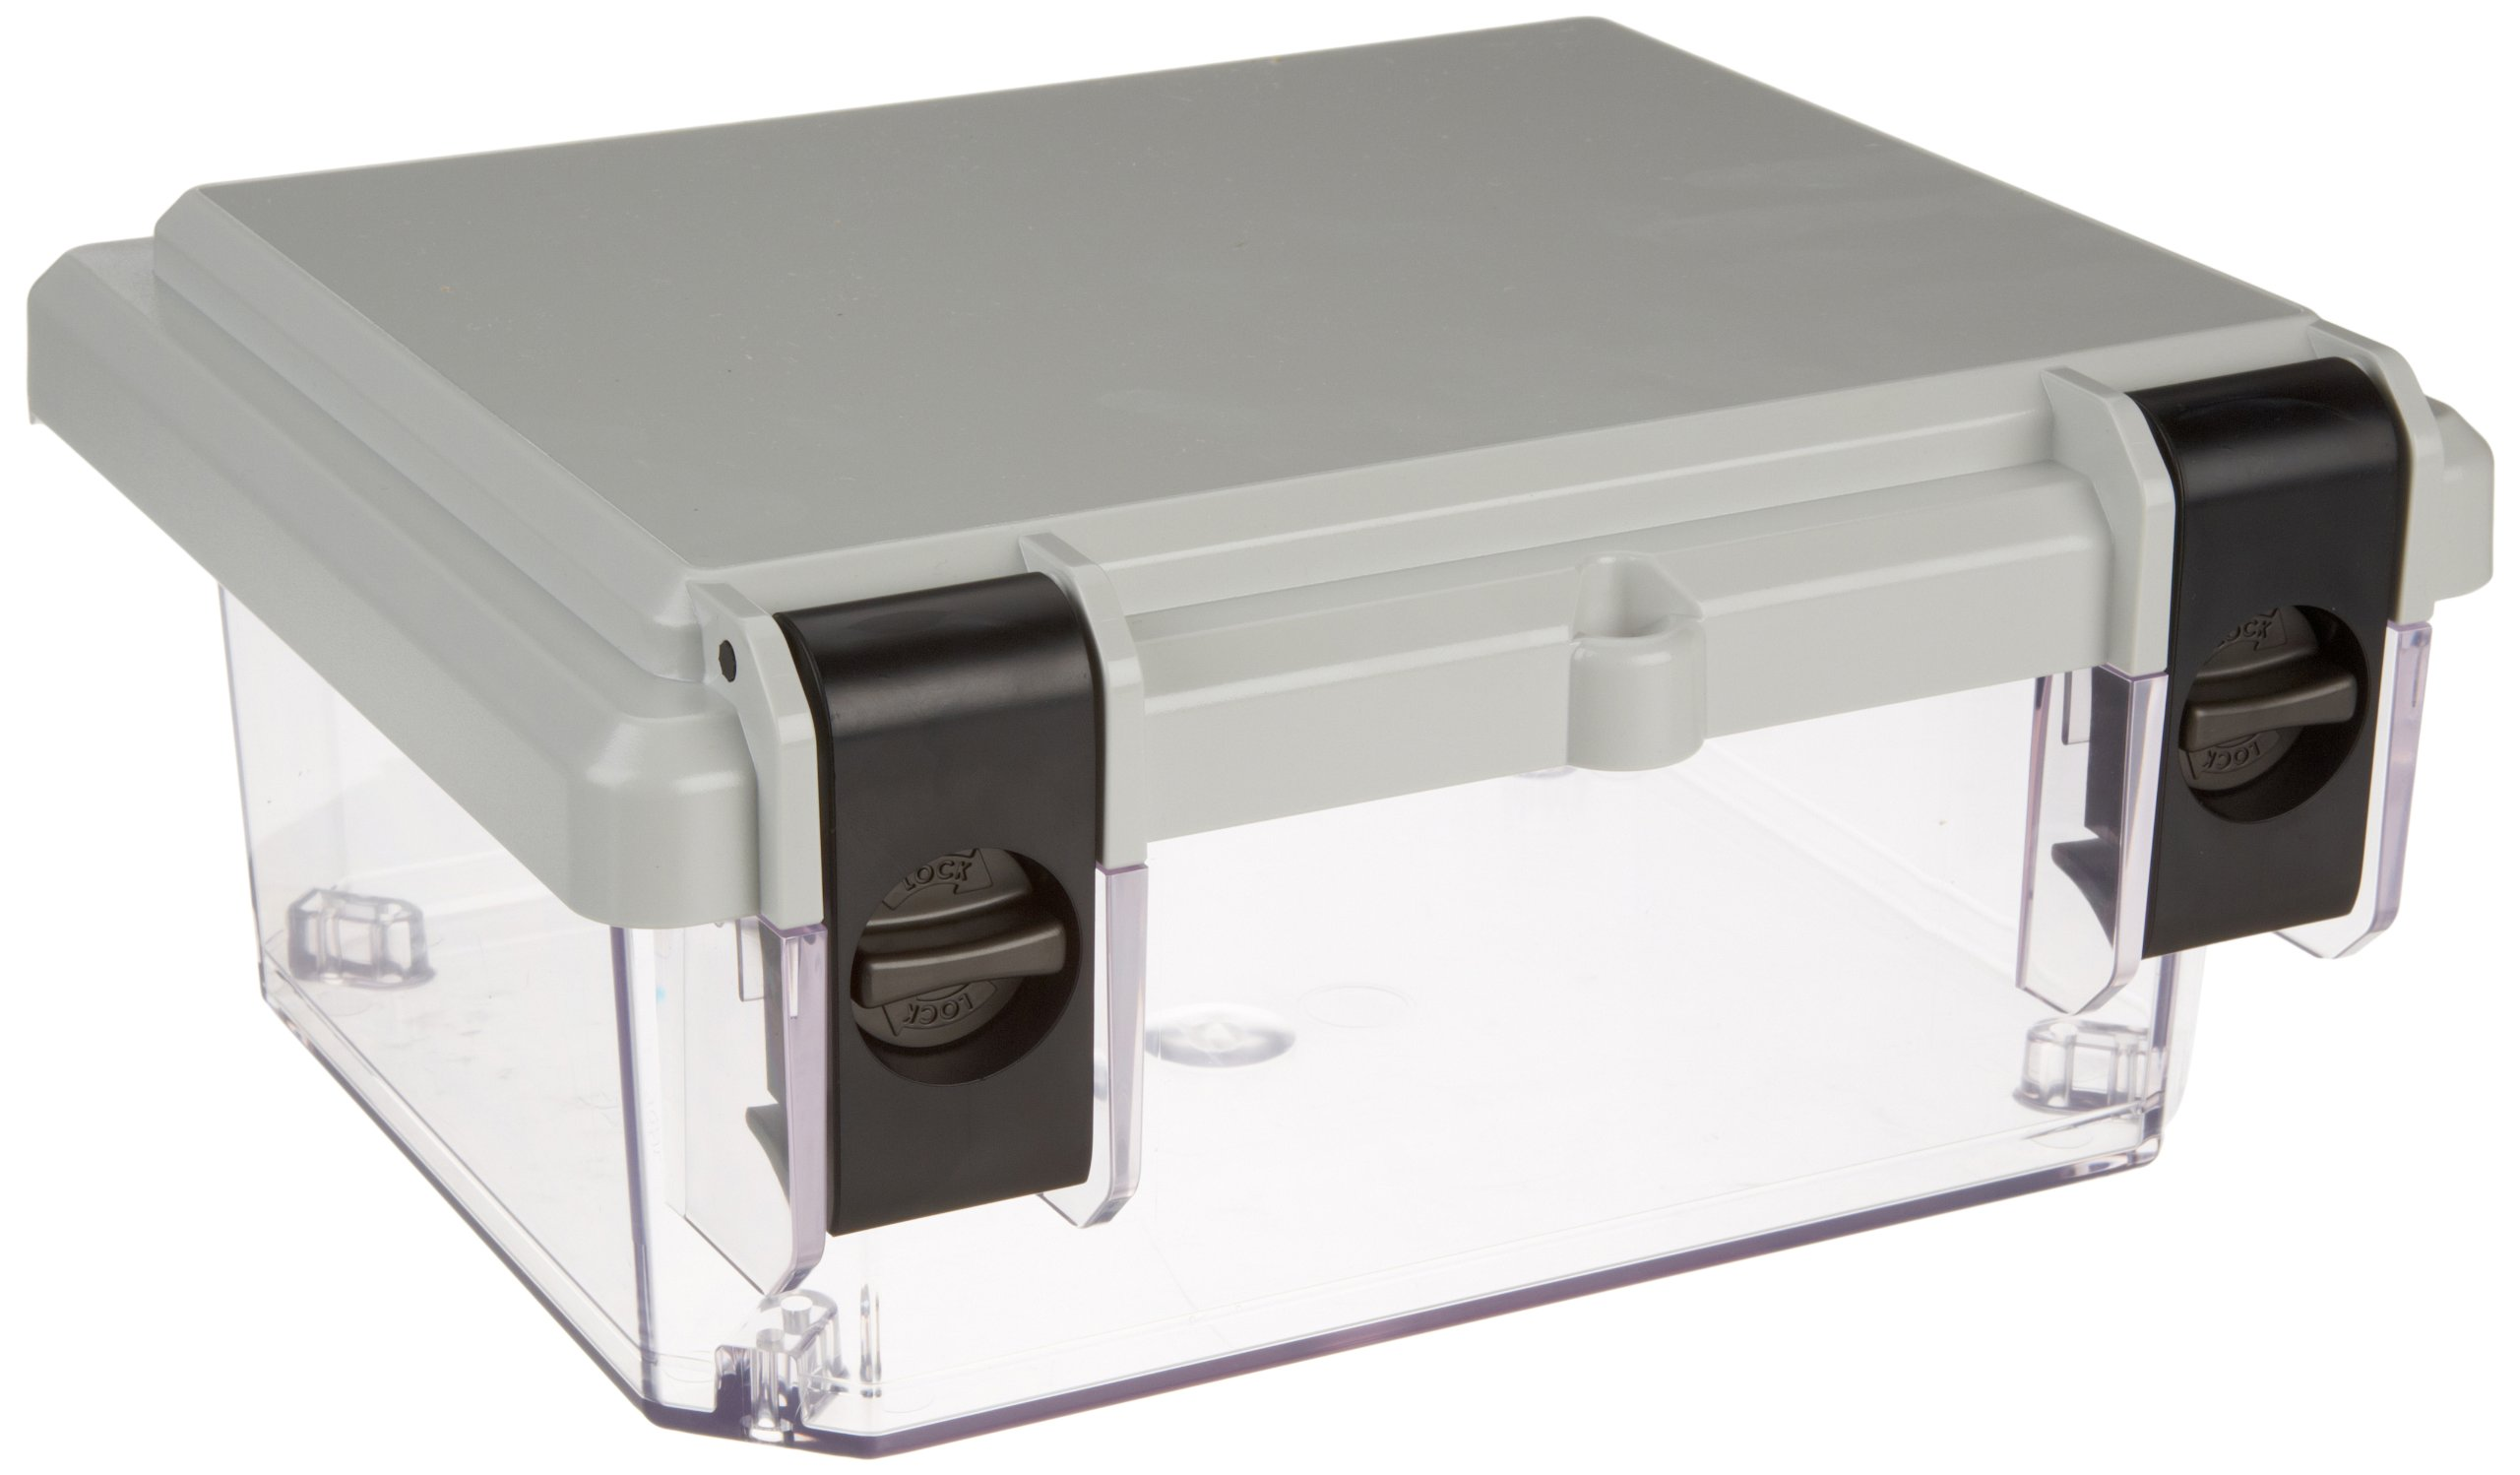 Serpac I342HL Polycarbonate Plastic Enclosure, 11-3/4'' Length x 9.98'' Width x 5.45'' Height, Top Gray/Bottom Clear